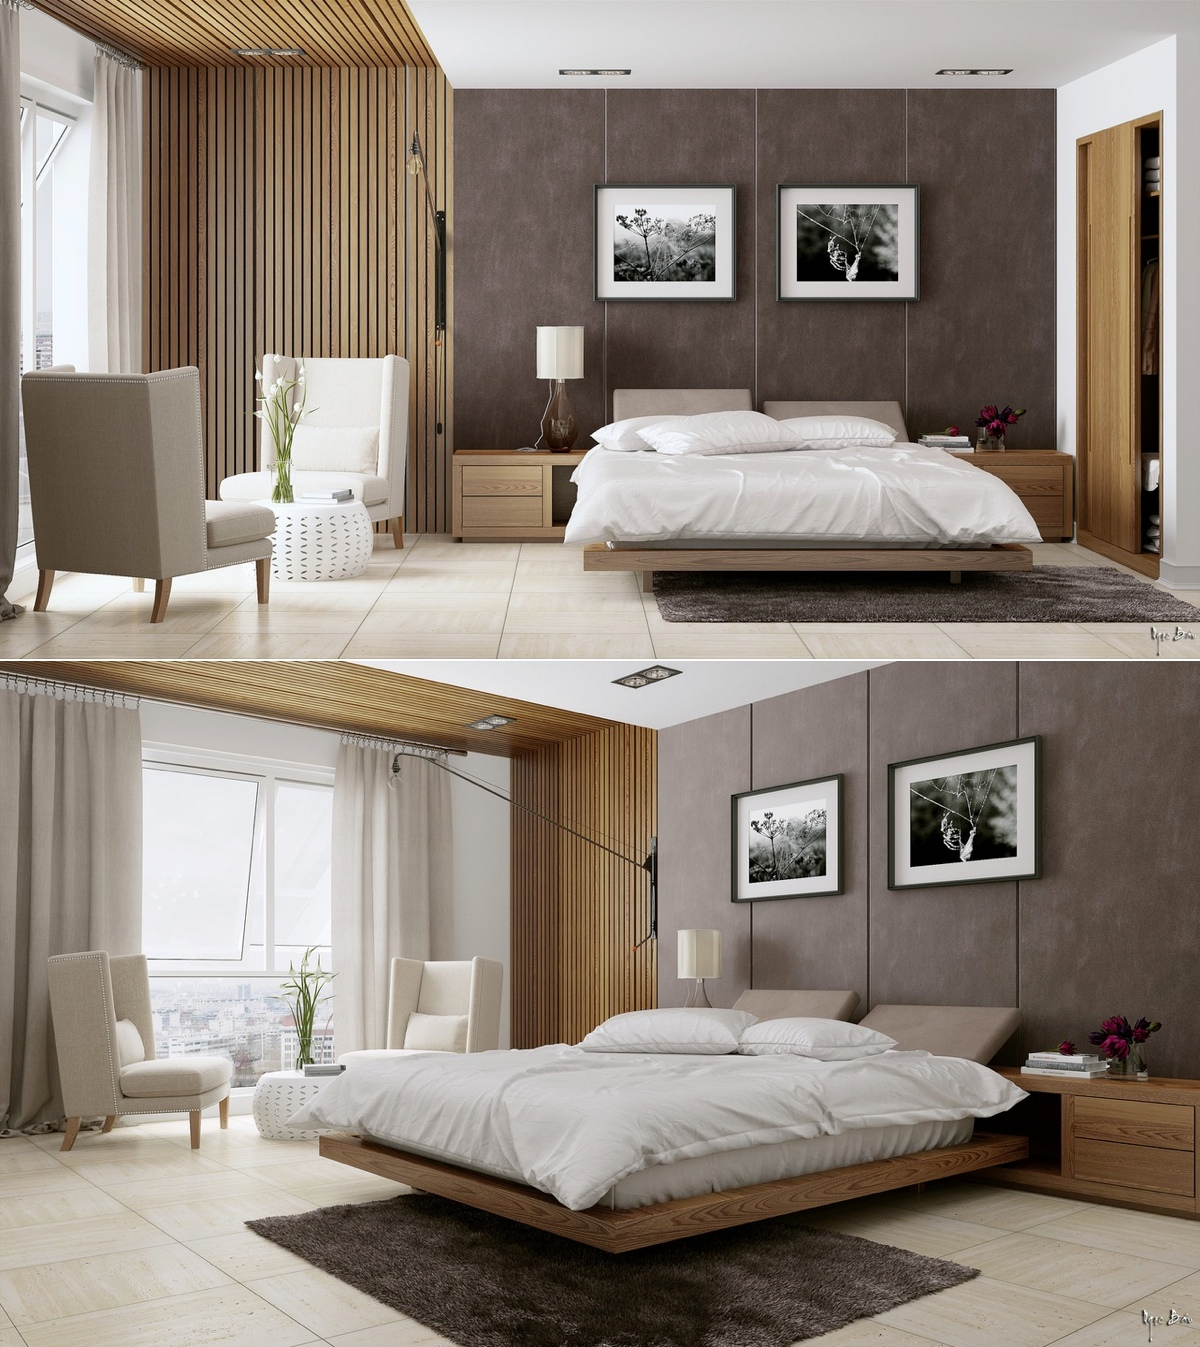 Modern Bedroom Interior Design: Stylish Bedroom Designs With Beautiful Creative Details